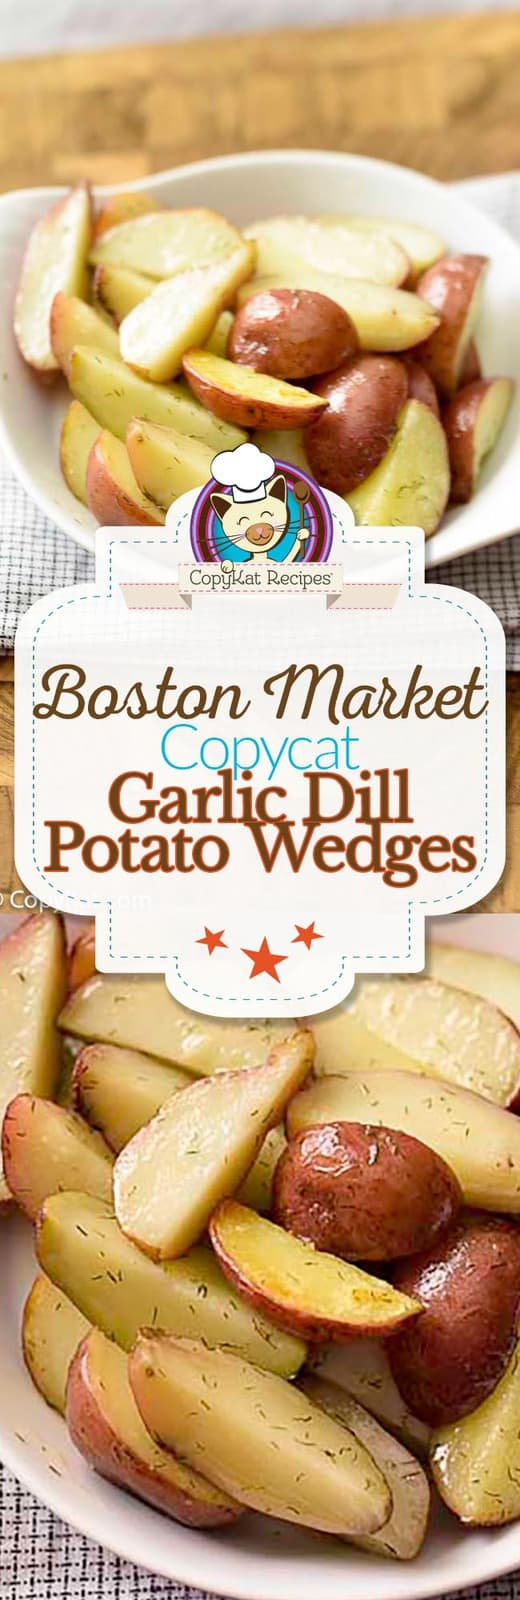 You can make Boston Market Garlic Dill Potato Wedges at home with this easy copycat recipe. #copycat #copycatrecipe #bostonmarket #potato #sidedish #baked #inoven #oven